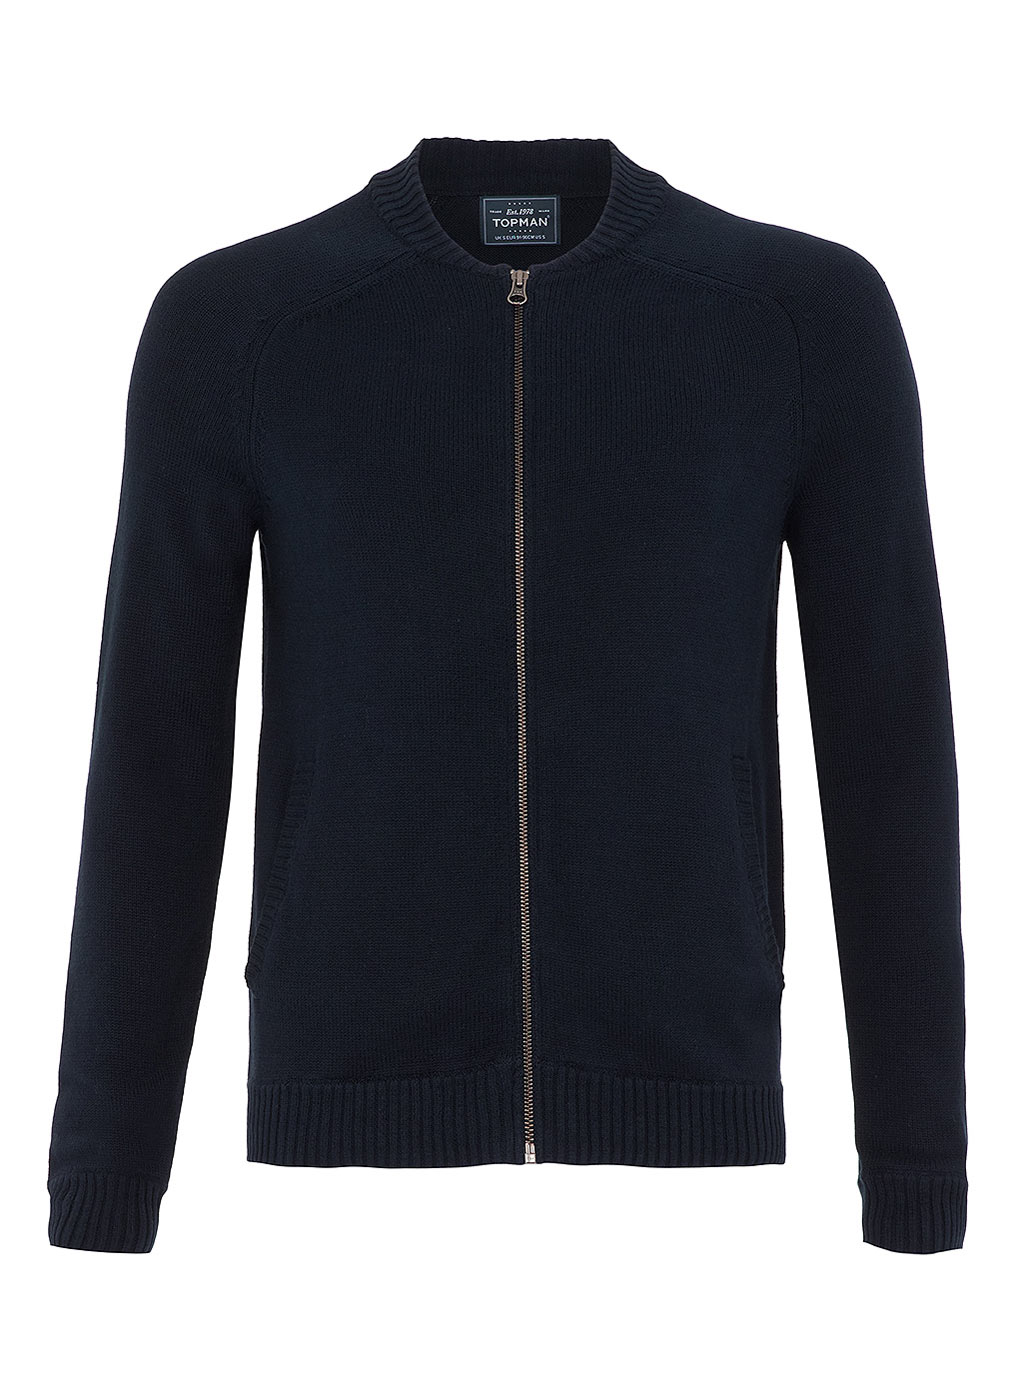 Topman Navy Zip Through Bomber Cardigan In Blue For Men Lyst